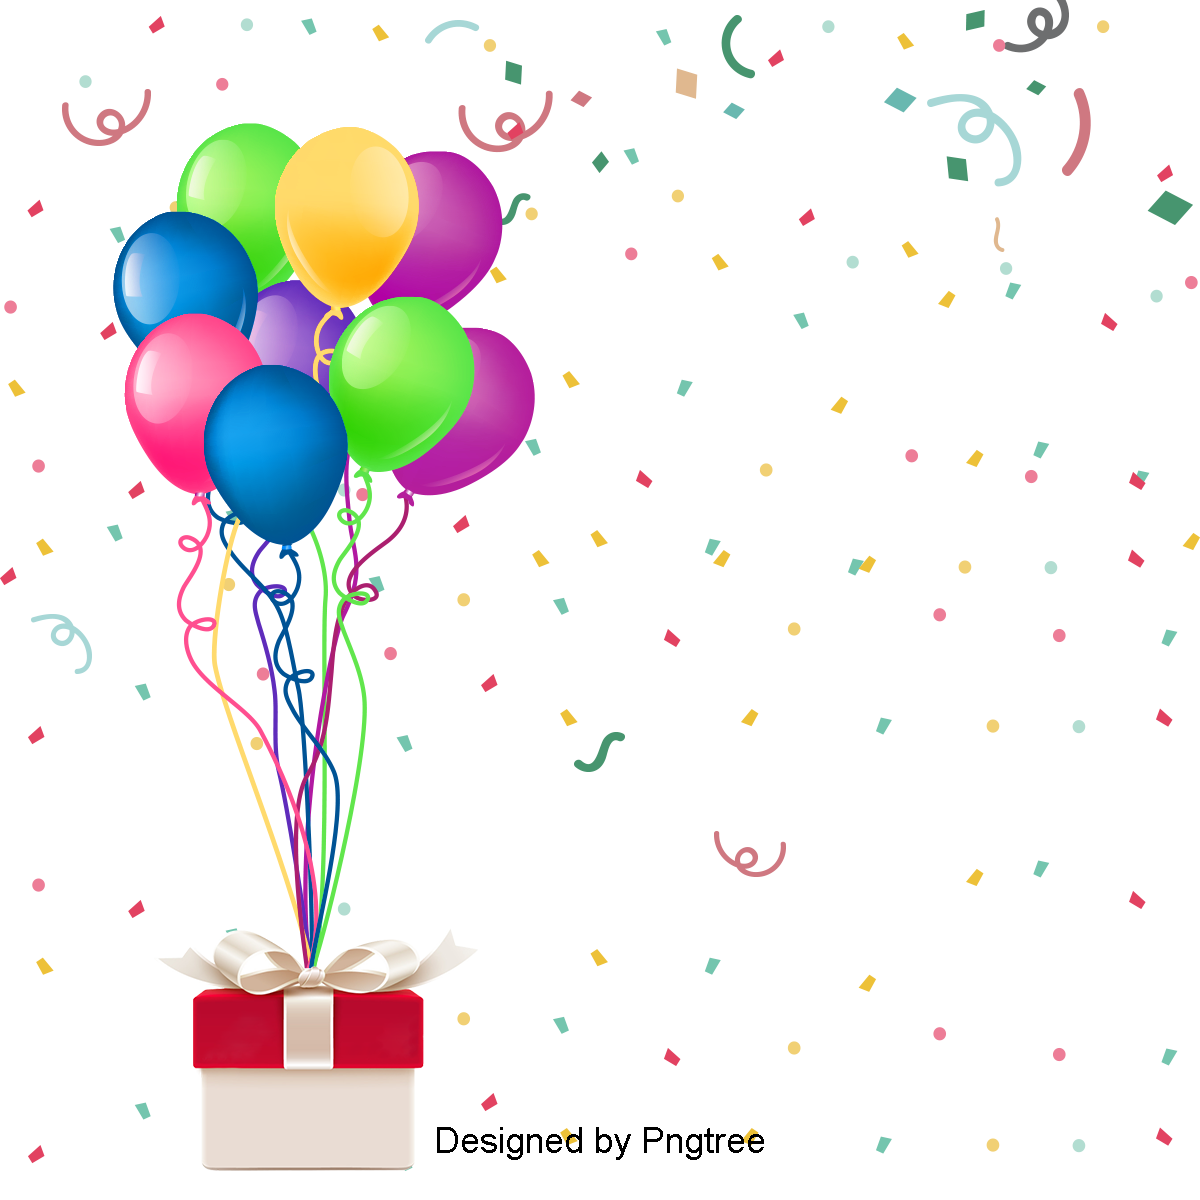 Fantasy Beautiful Color Colorful Happy Birthday Party Balloons Silk Color Clipart Birthday Clipart Colorful Png Transparent Image And Clipart For Free Down Birthday Party Balloon Cute Happy Birthday Happy Birthday Posters